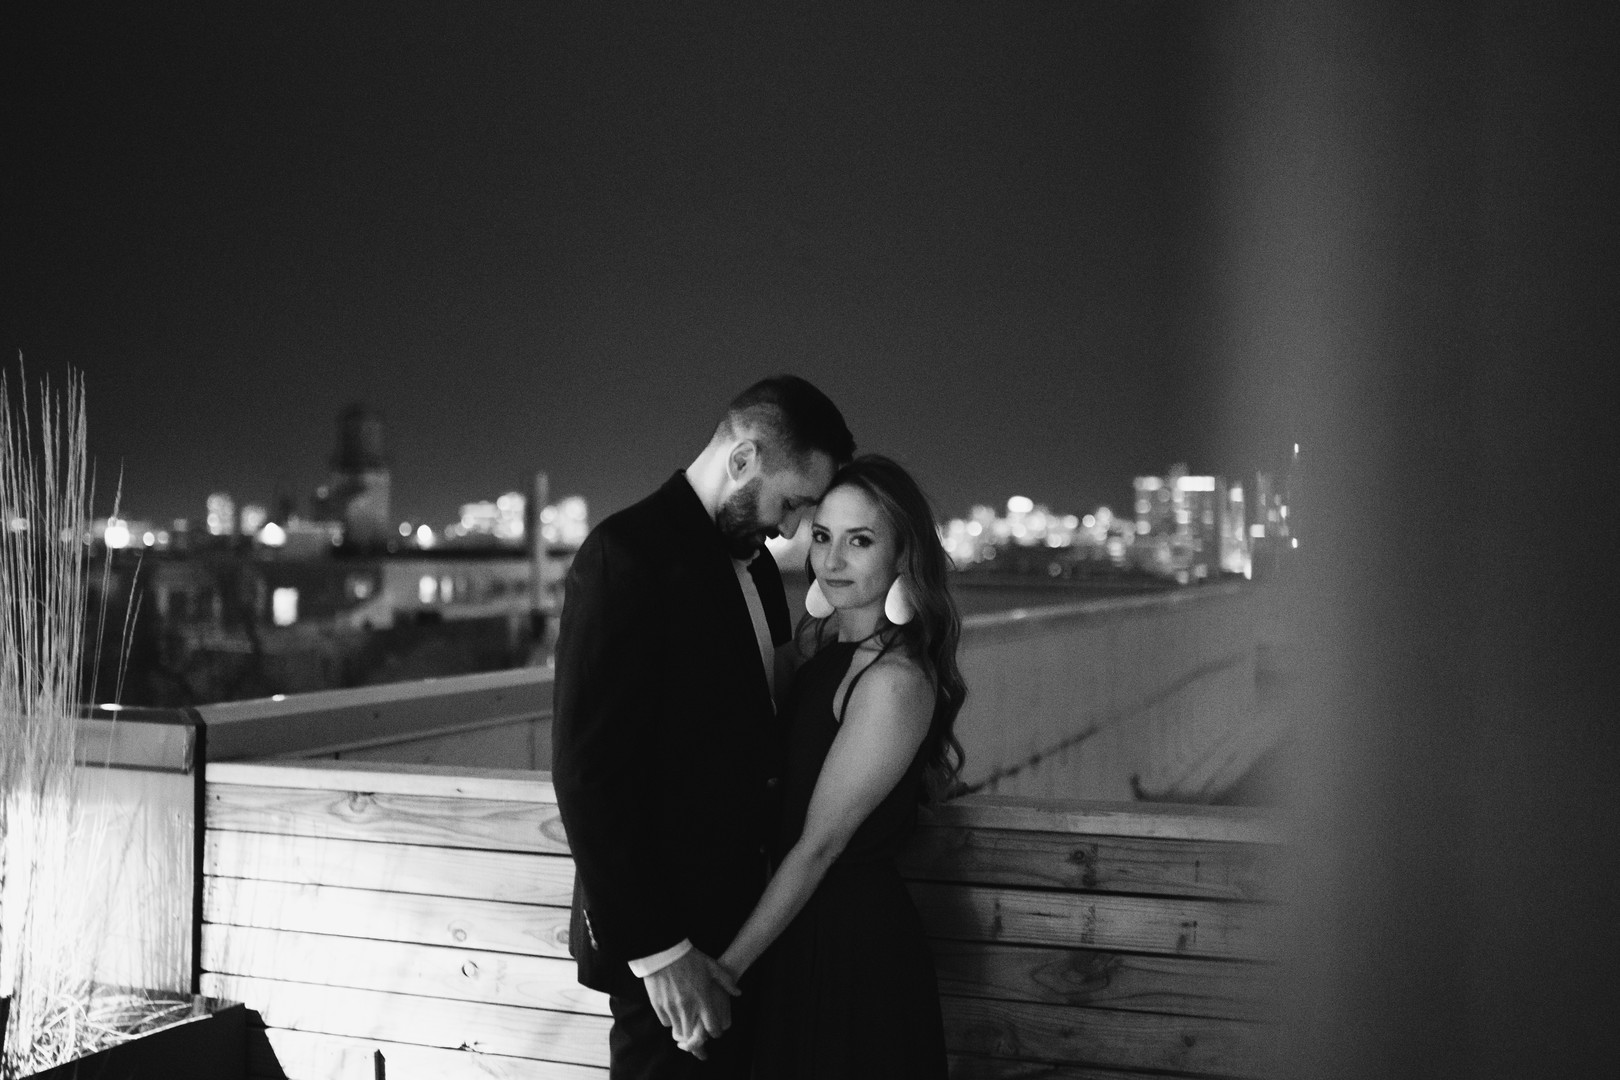 Evening Chicago engagement session captured by Robyn and Finch. See more engagement photo ideas on CHItheeWED.com!